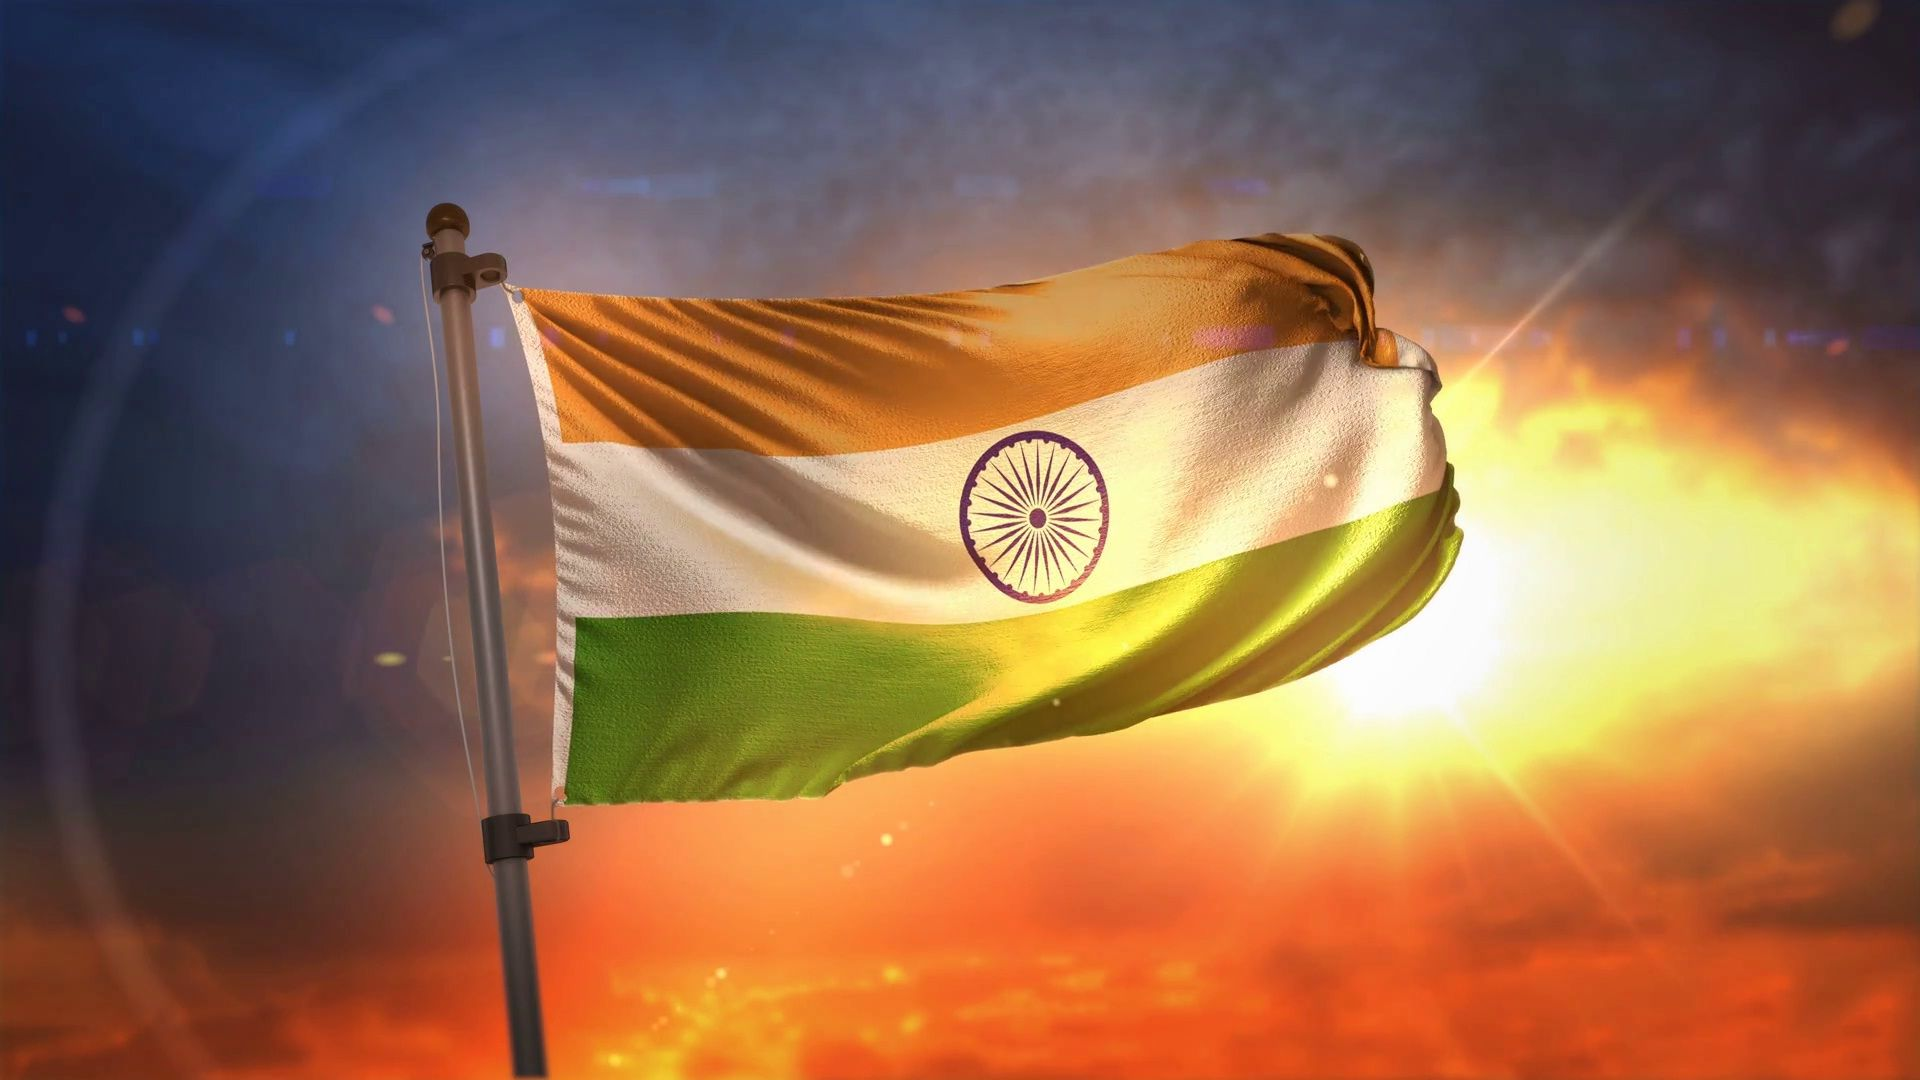 Flag of India Full HD with Visual Effects